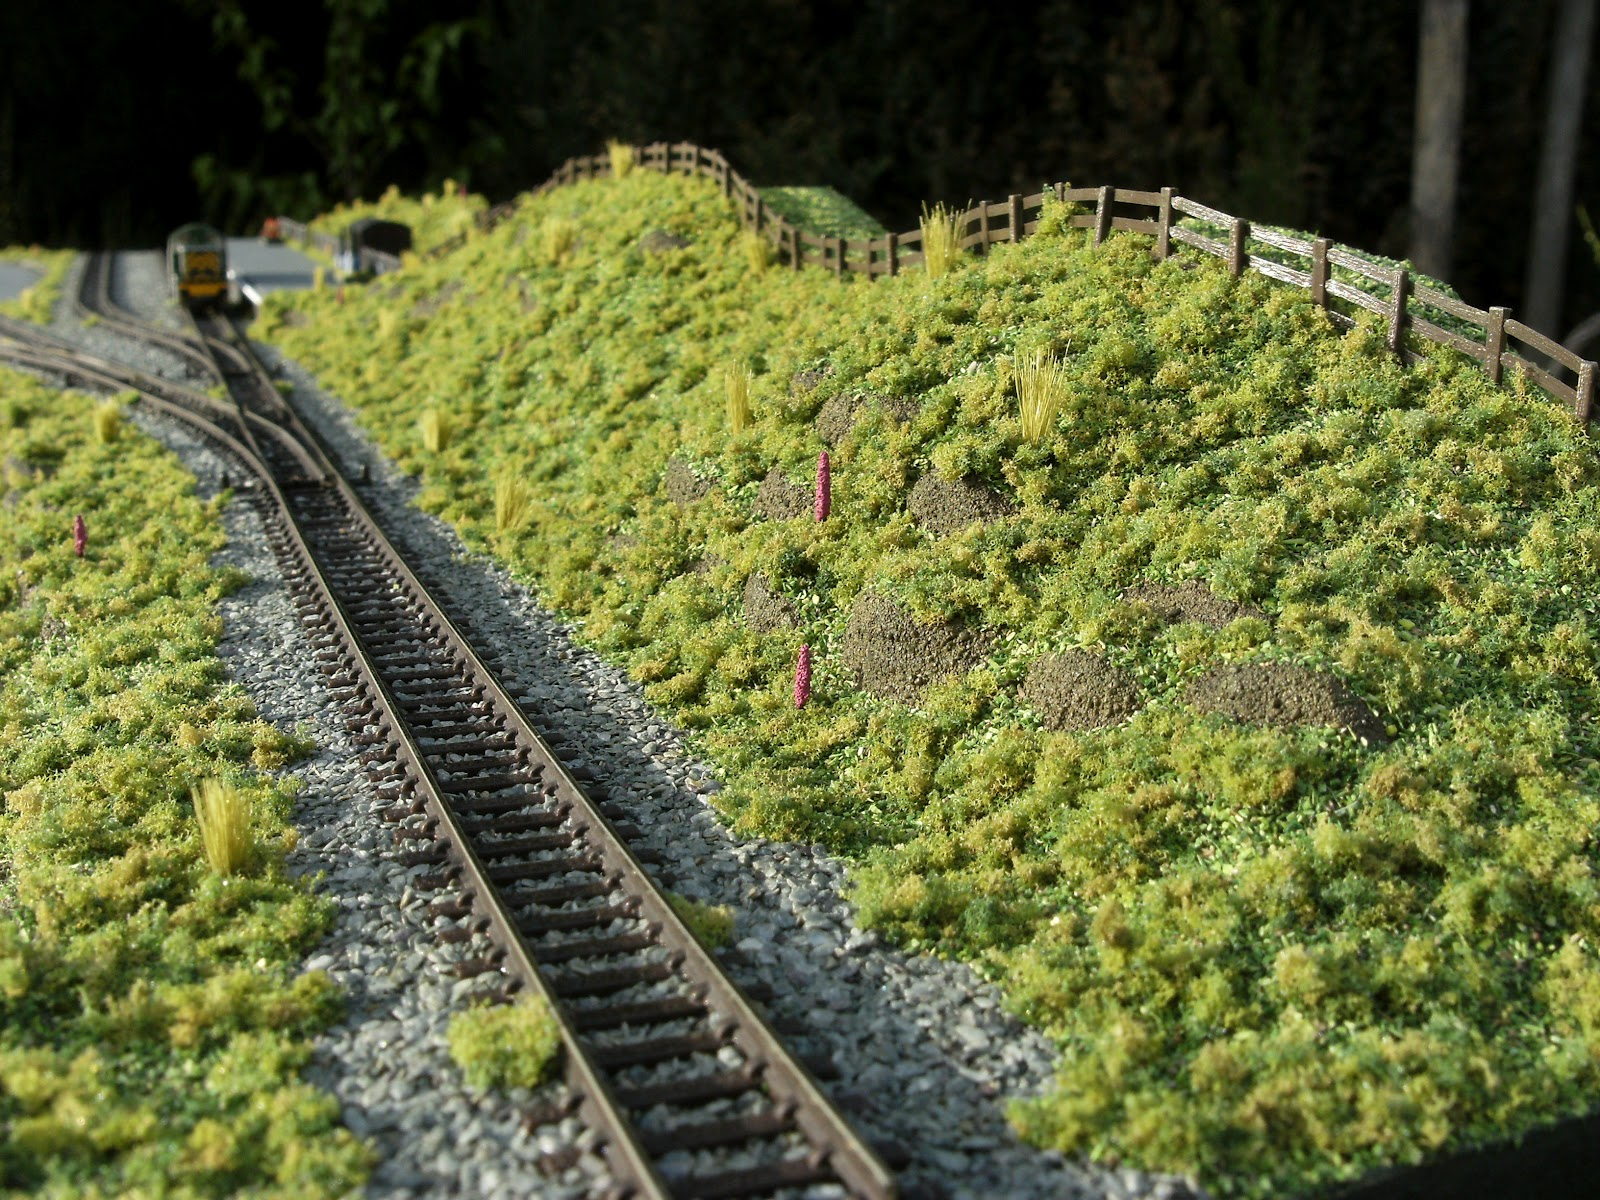 Samuel: Ground cover for model train layouts